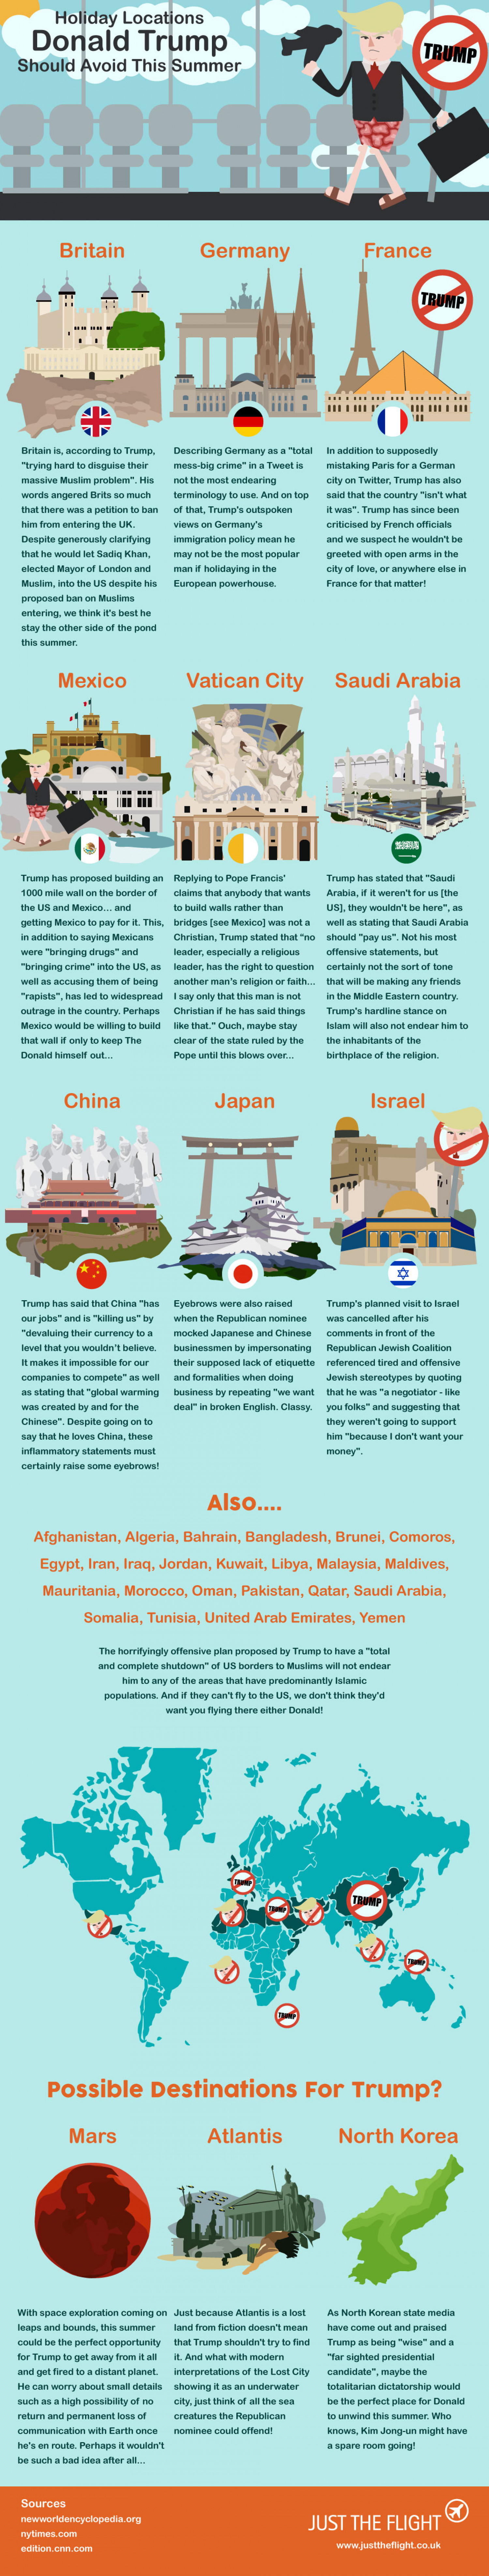 Holiday Locations Trump Should Avoid This Summer Infographic